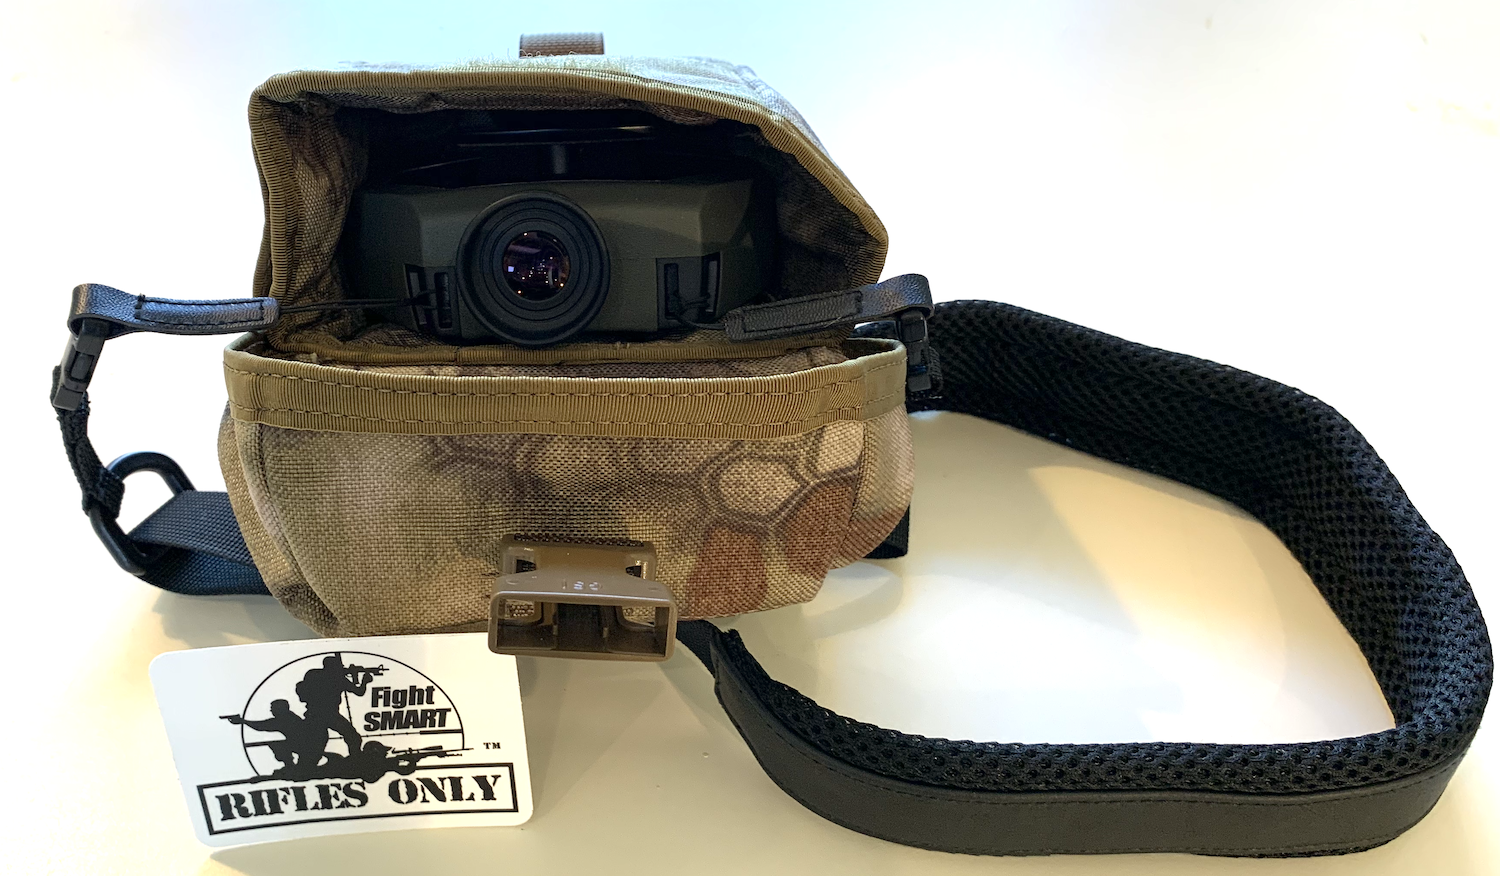 Terrapin X In Rifles Only Laser Range Finder Case